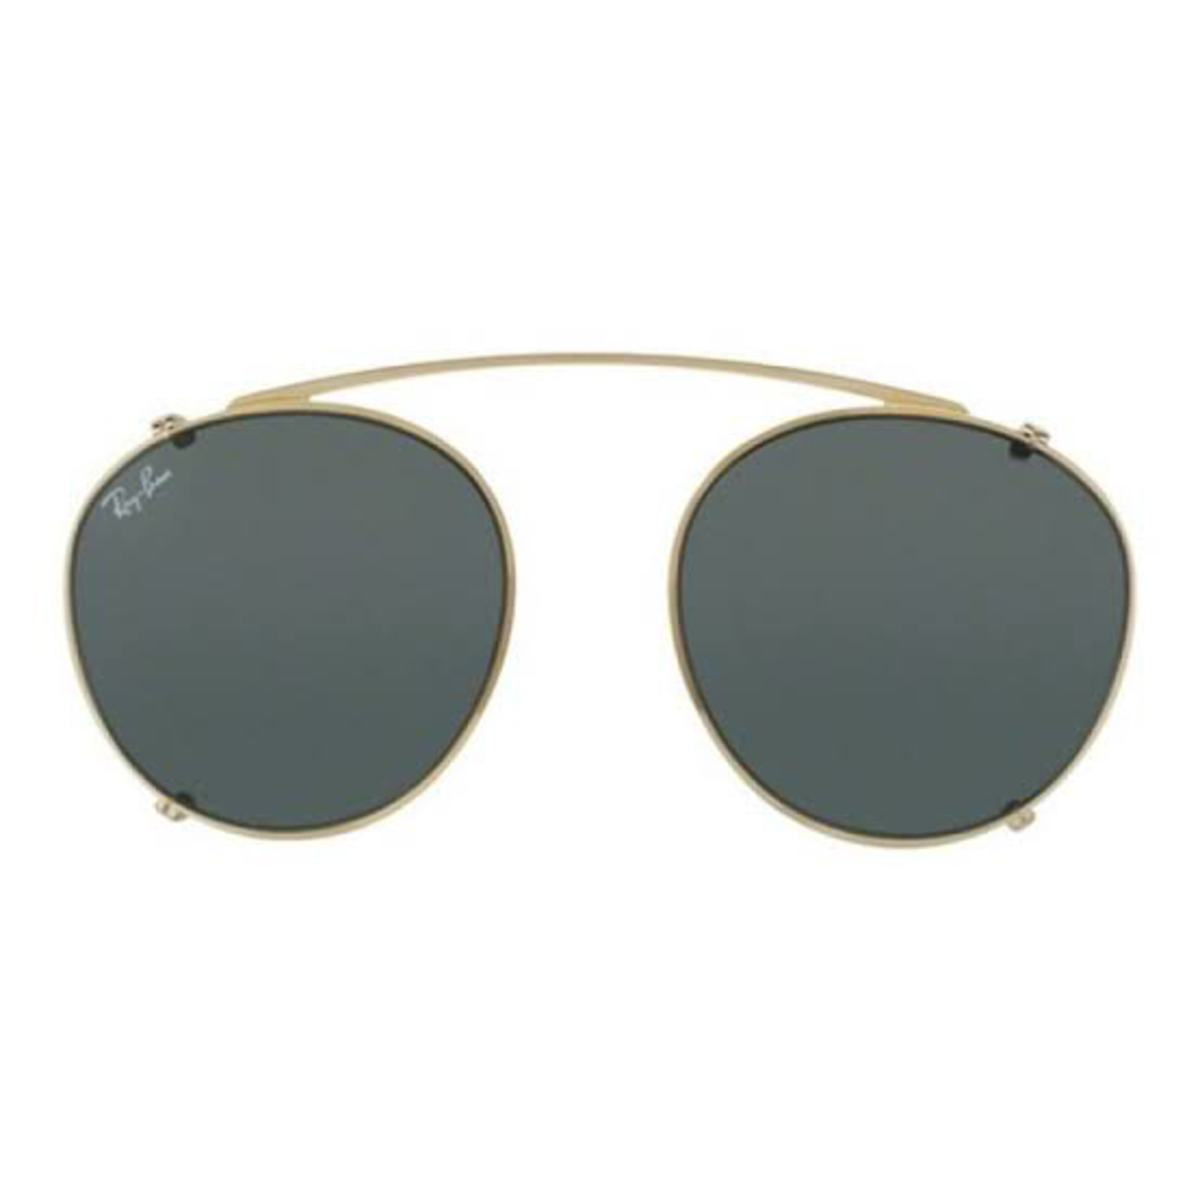 Clip On Ray Ban Rb2180c 250071 49mm Serve Na Armação Rb2180